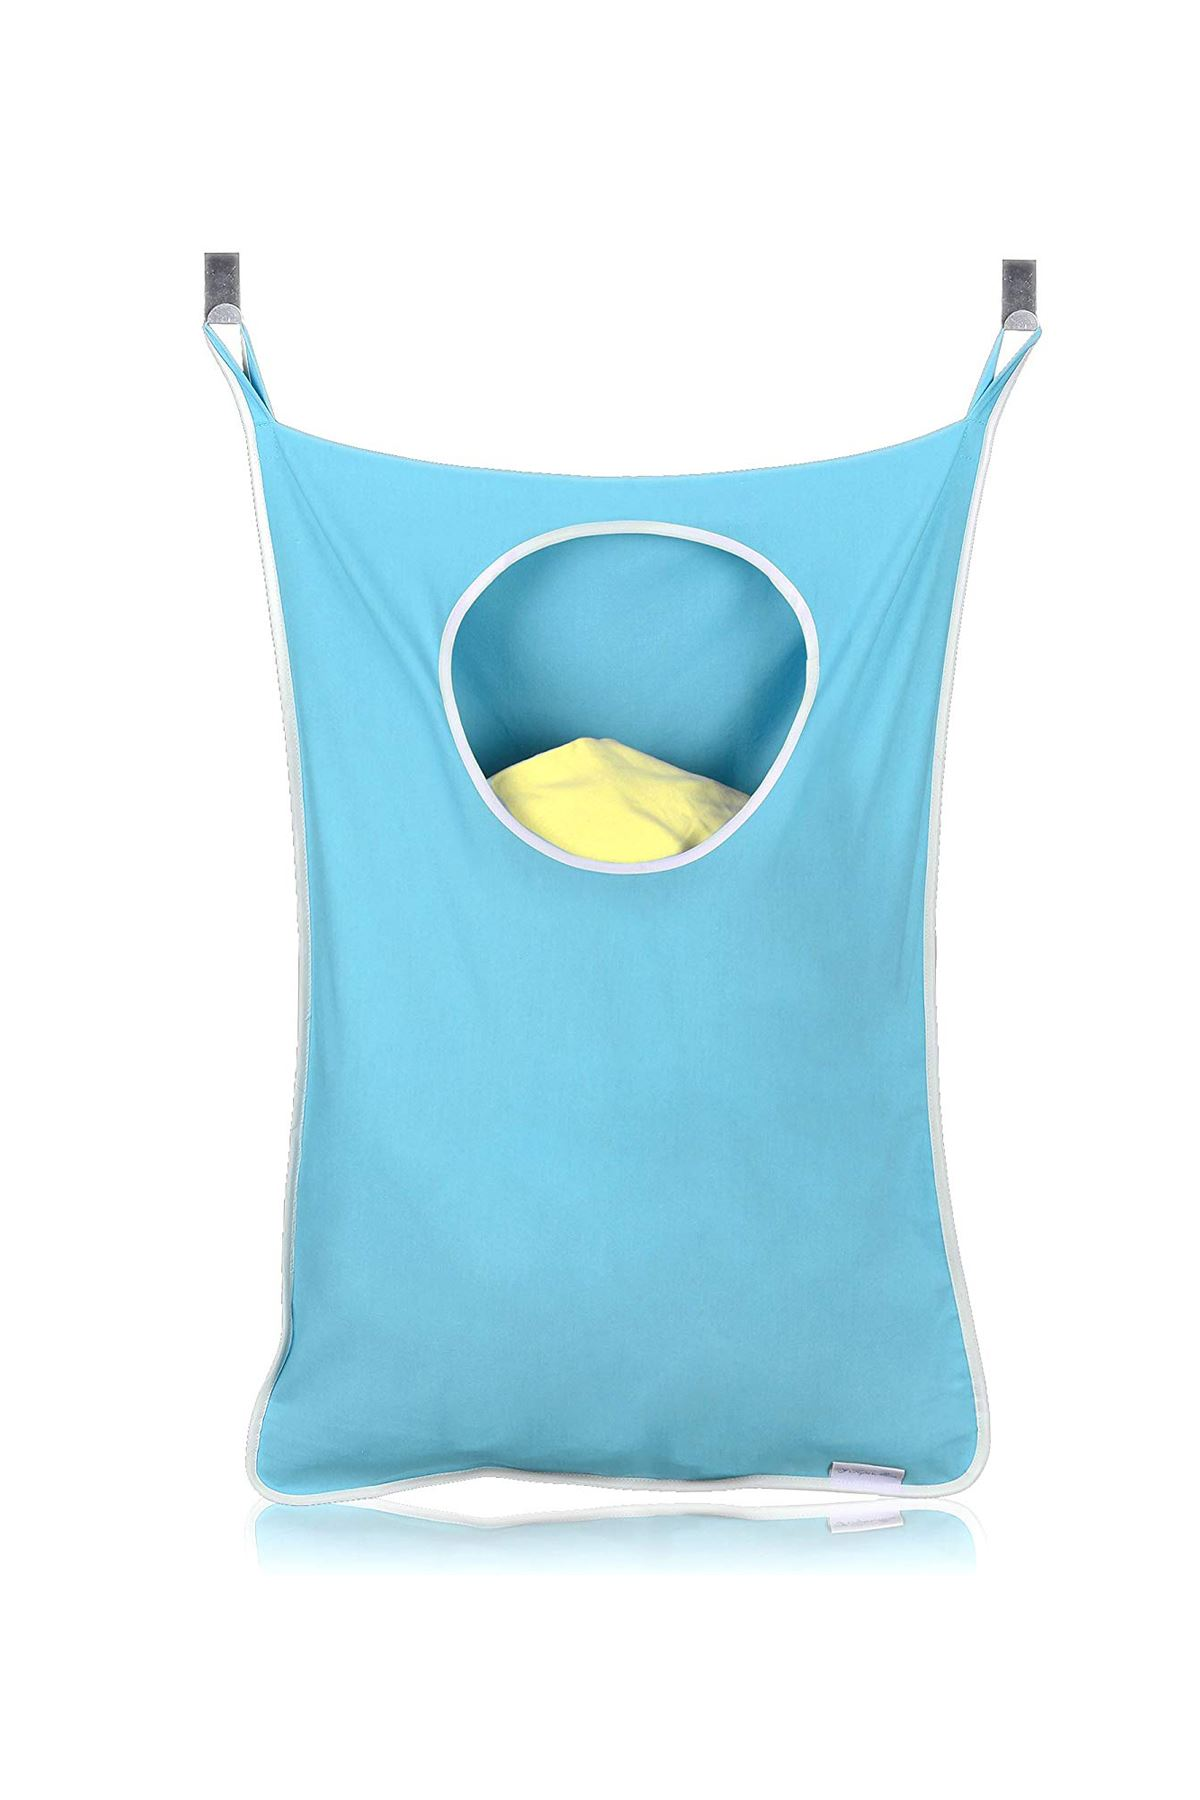 Blue Laundry Toy Hanger Kids Room Bathroom Dirty Clothes Hooked Behind Door Wall Model Practical Household Items Storage Models